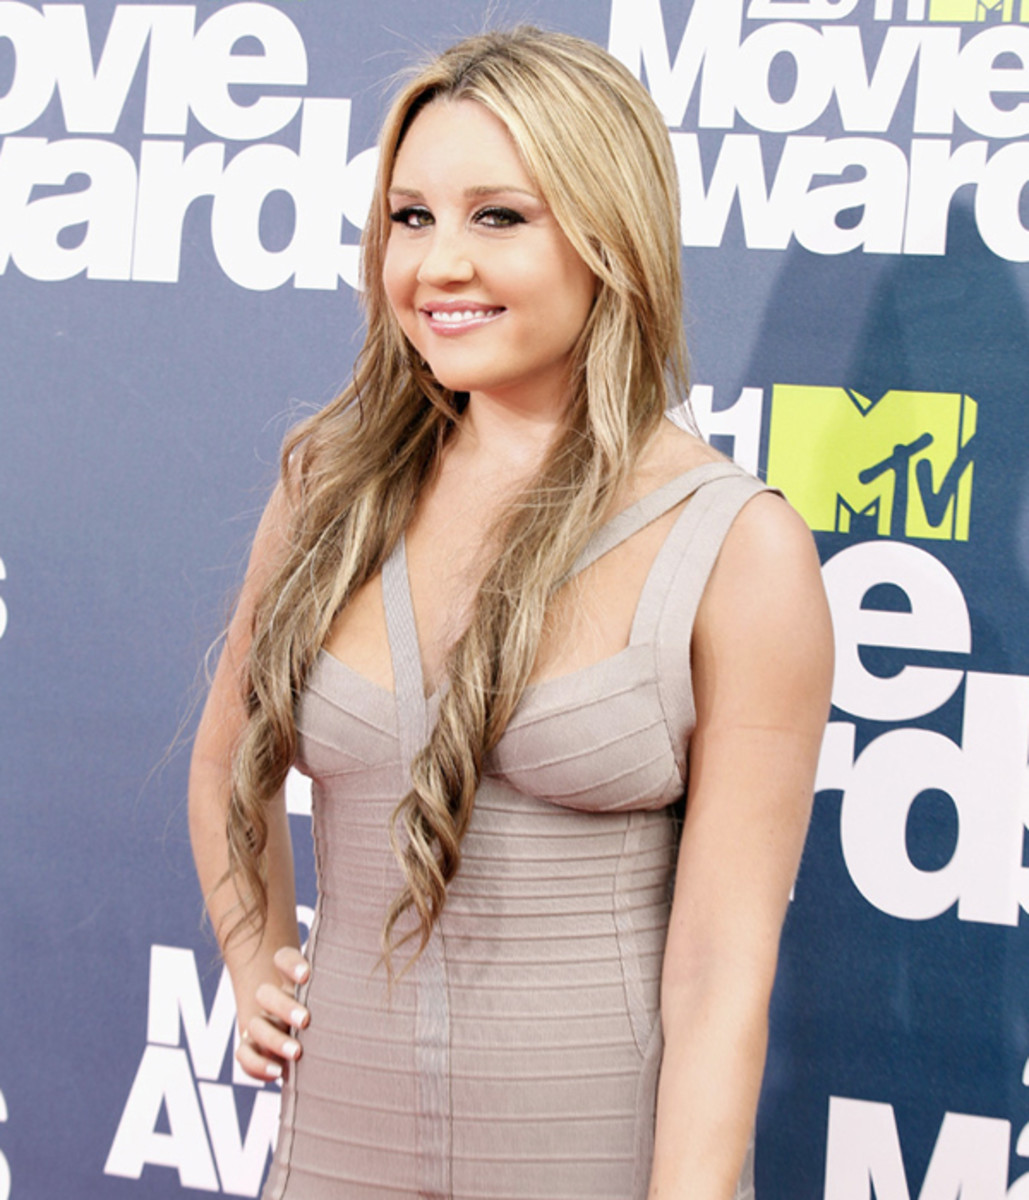 MTV-Movie-Awards-2011-Amanda-Bynes